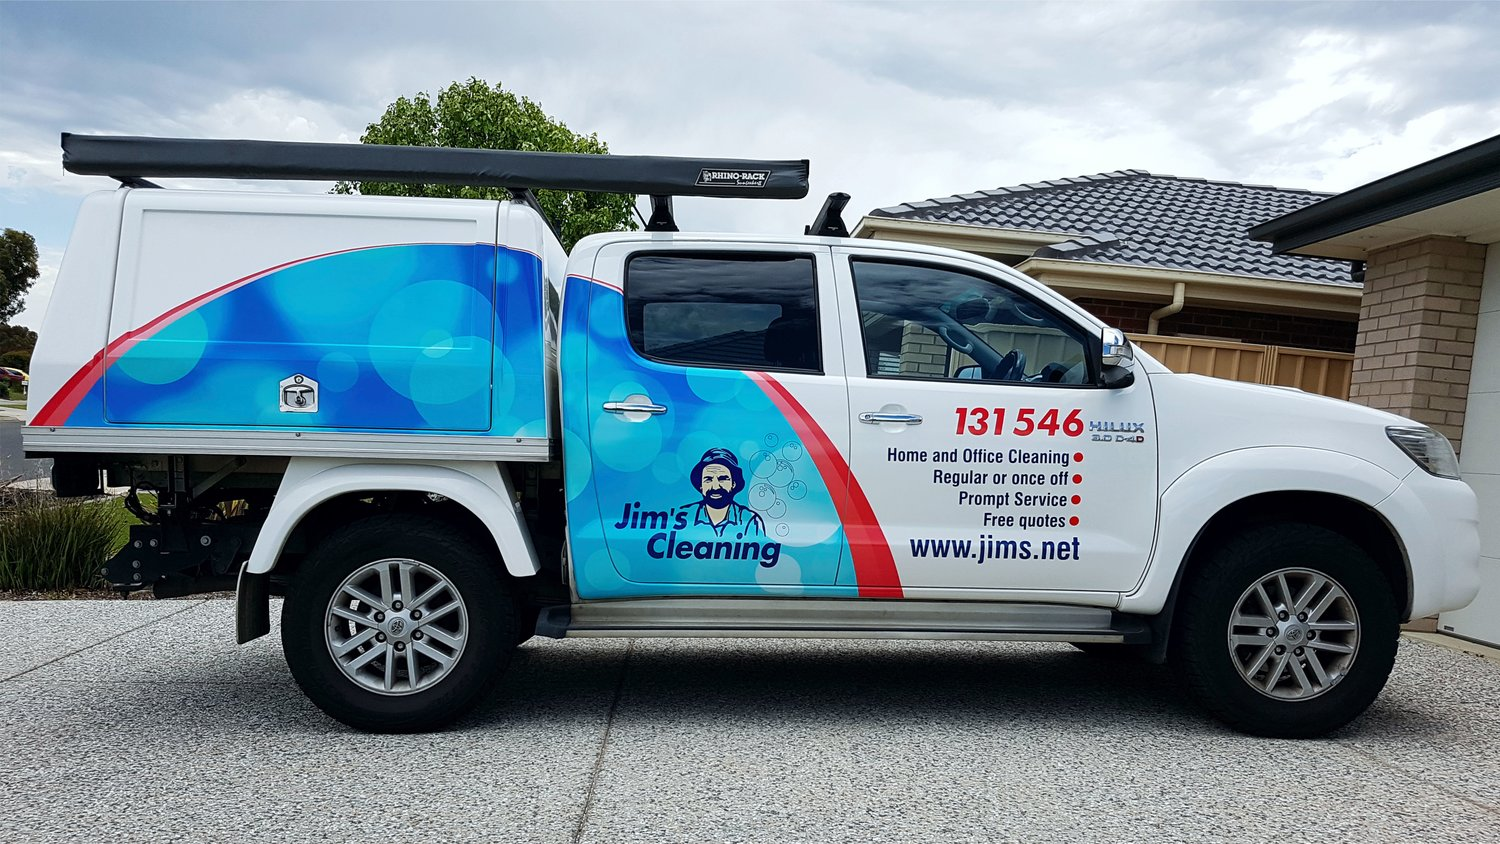 Colour a car - Jims Cleaning Jims Franchise Sign Colour Vehicle Signage Adelaide Vehicle Graphics Adelaide